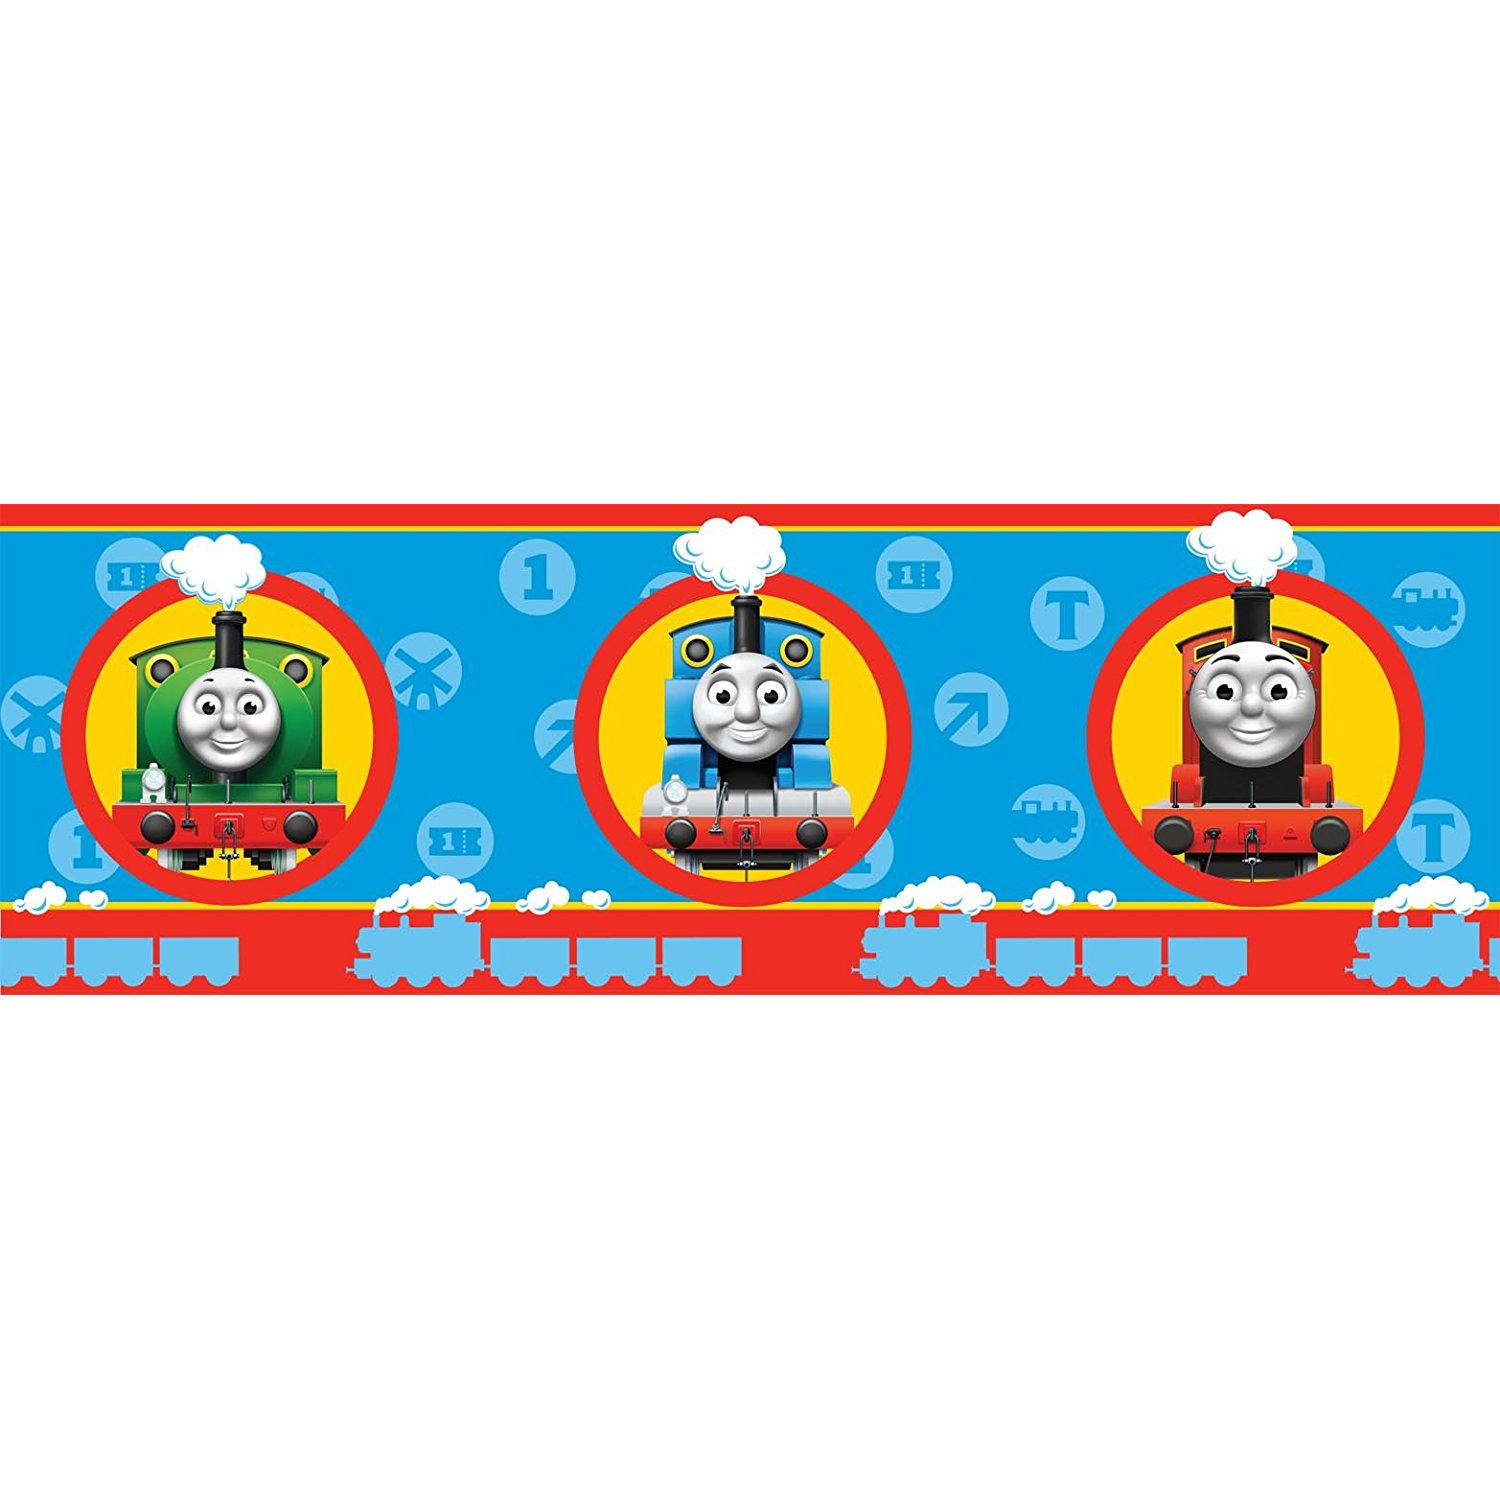 Thomas And Friends Wallpaper Border 5m Tank Engine Kids Bedroom